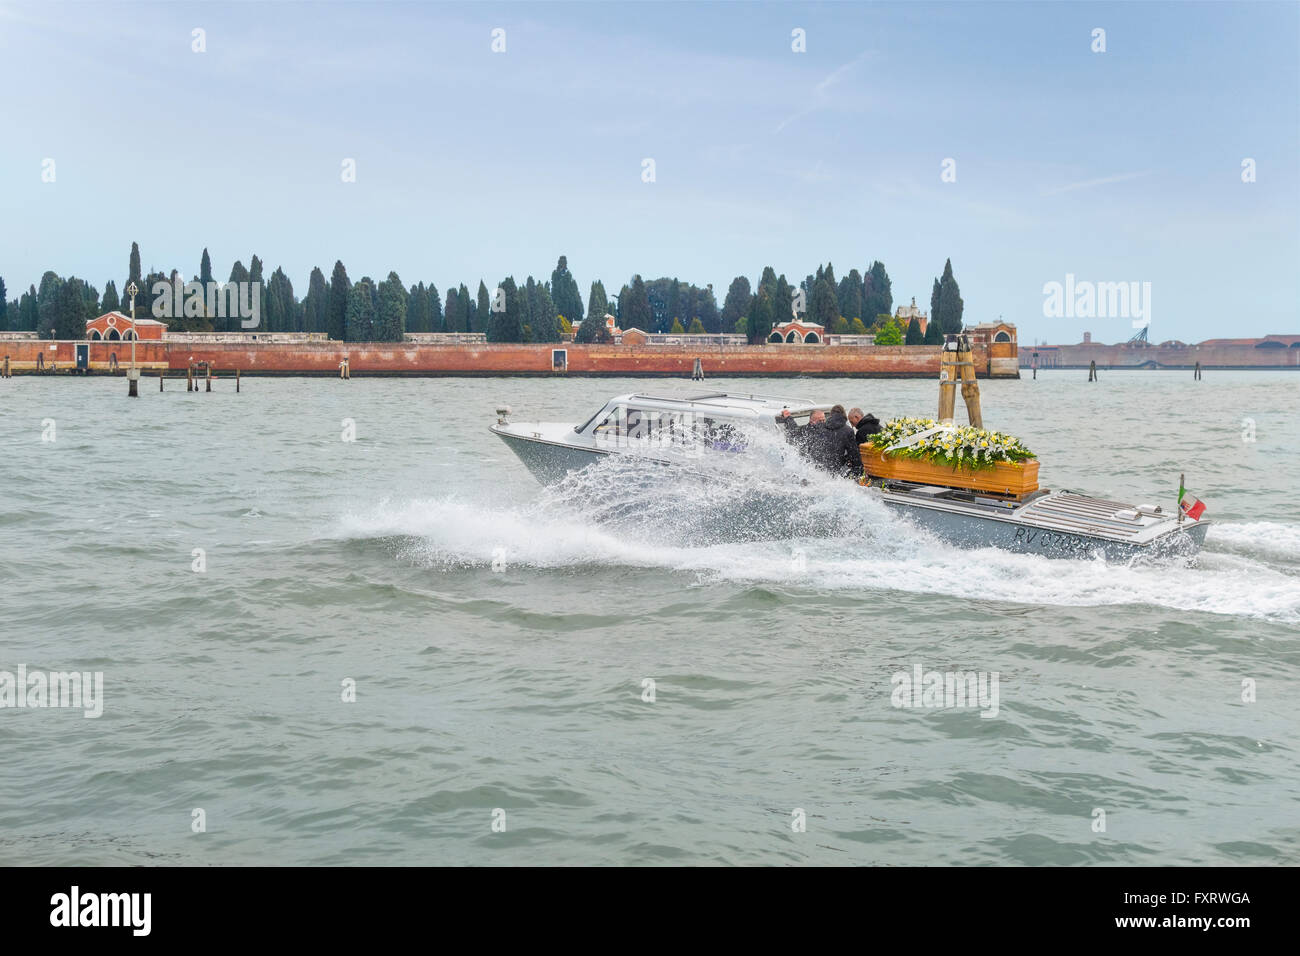 https://c7.alamy.com/comp/FXRWGA/venice-italy-water-hearse-or-funerary-funeral-boat-on-its-way-to-venices-FXRWGA.jpg